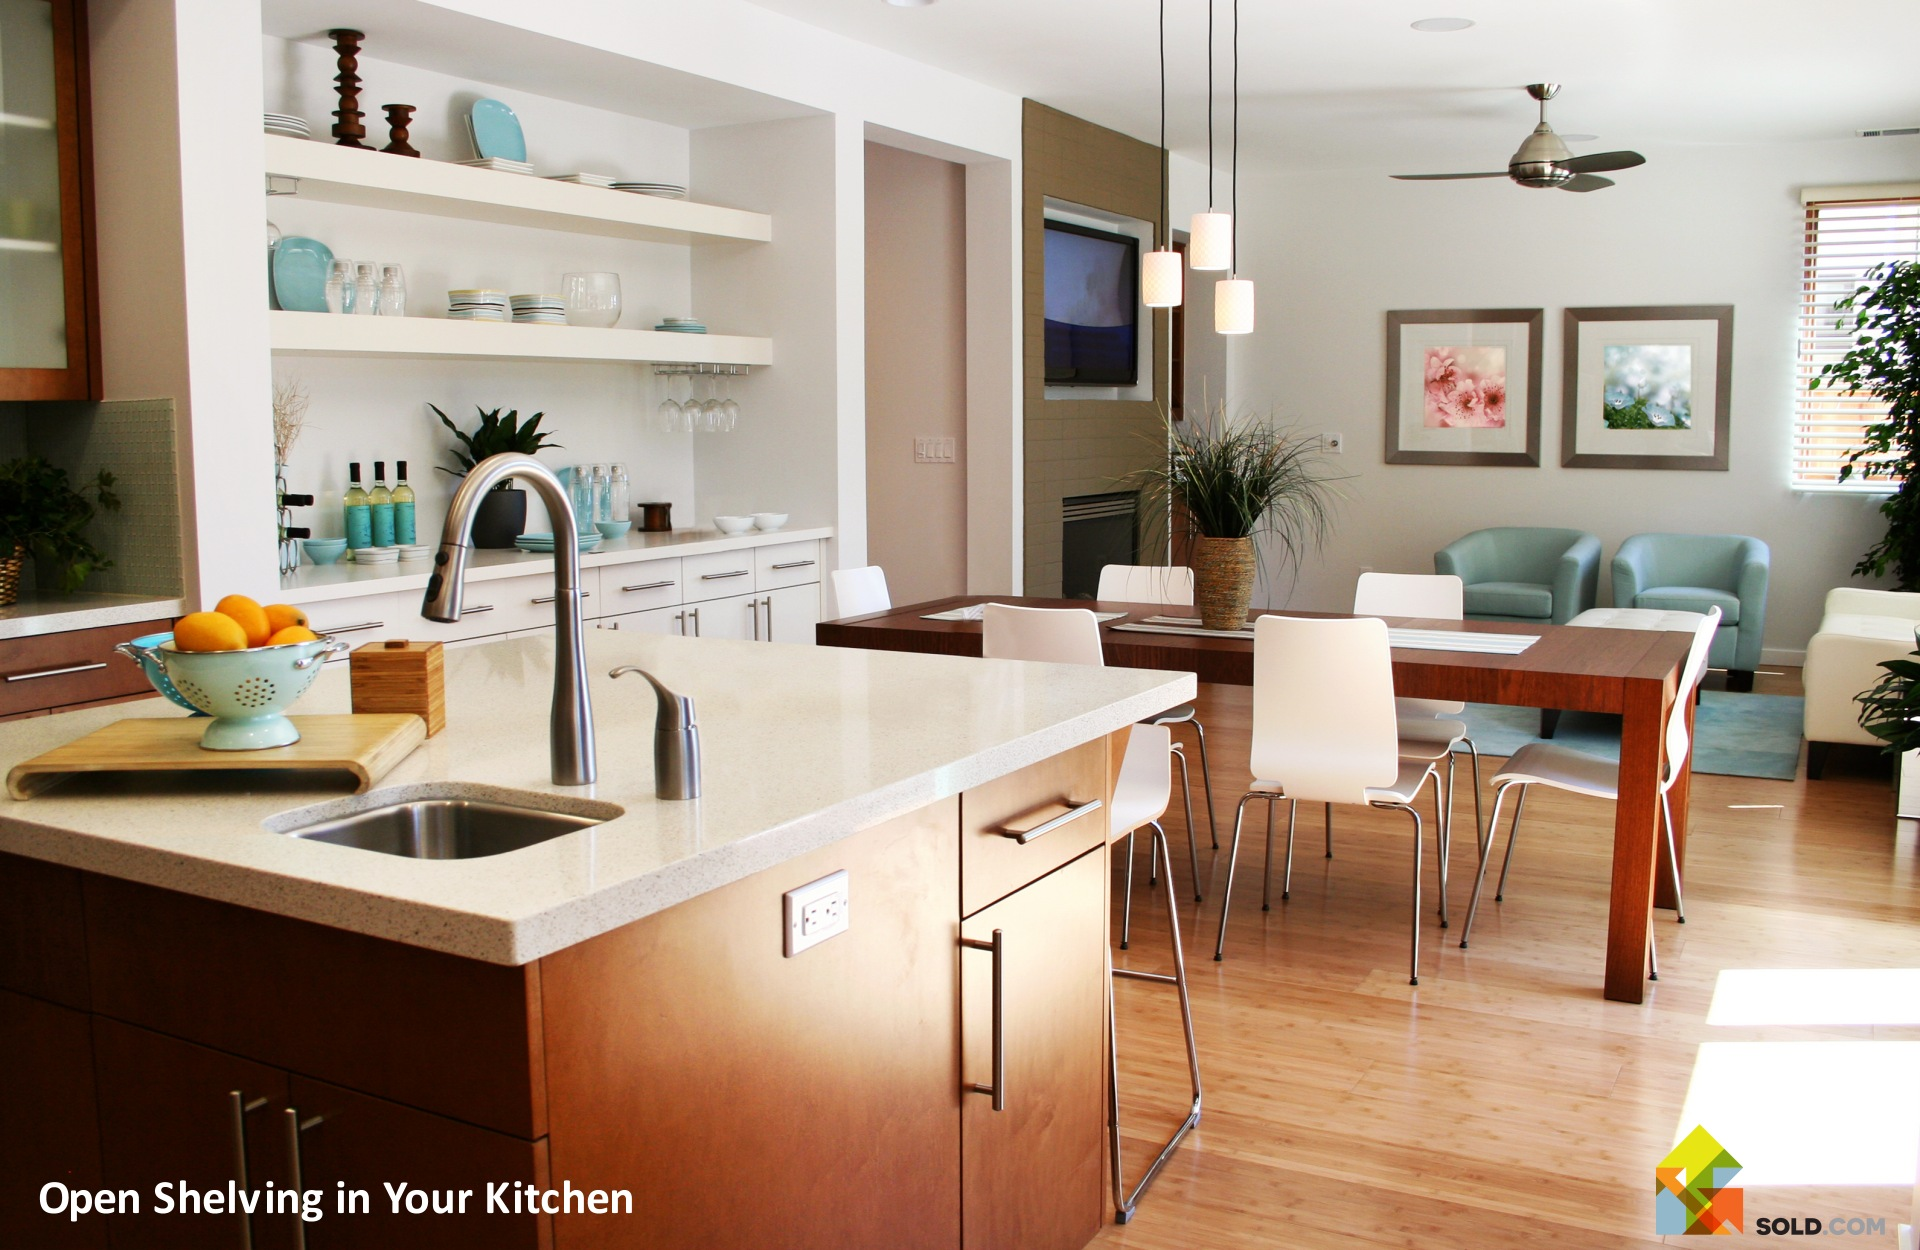 Should You Get Open Shelving in Your Kitchen?